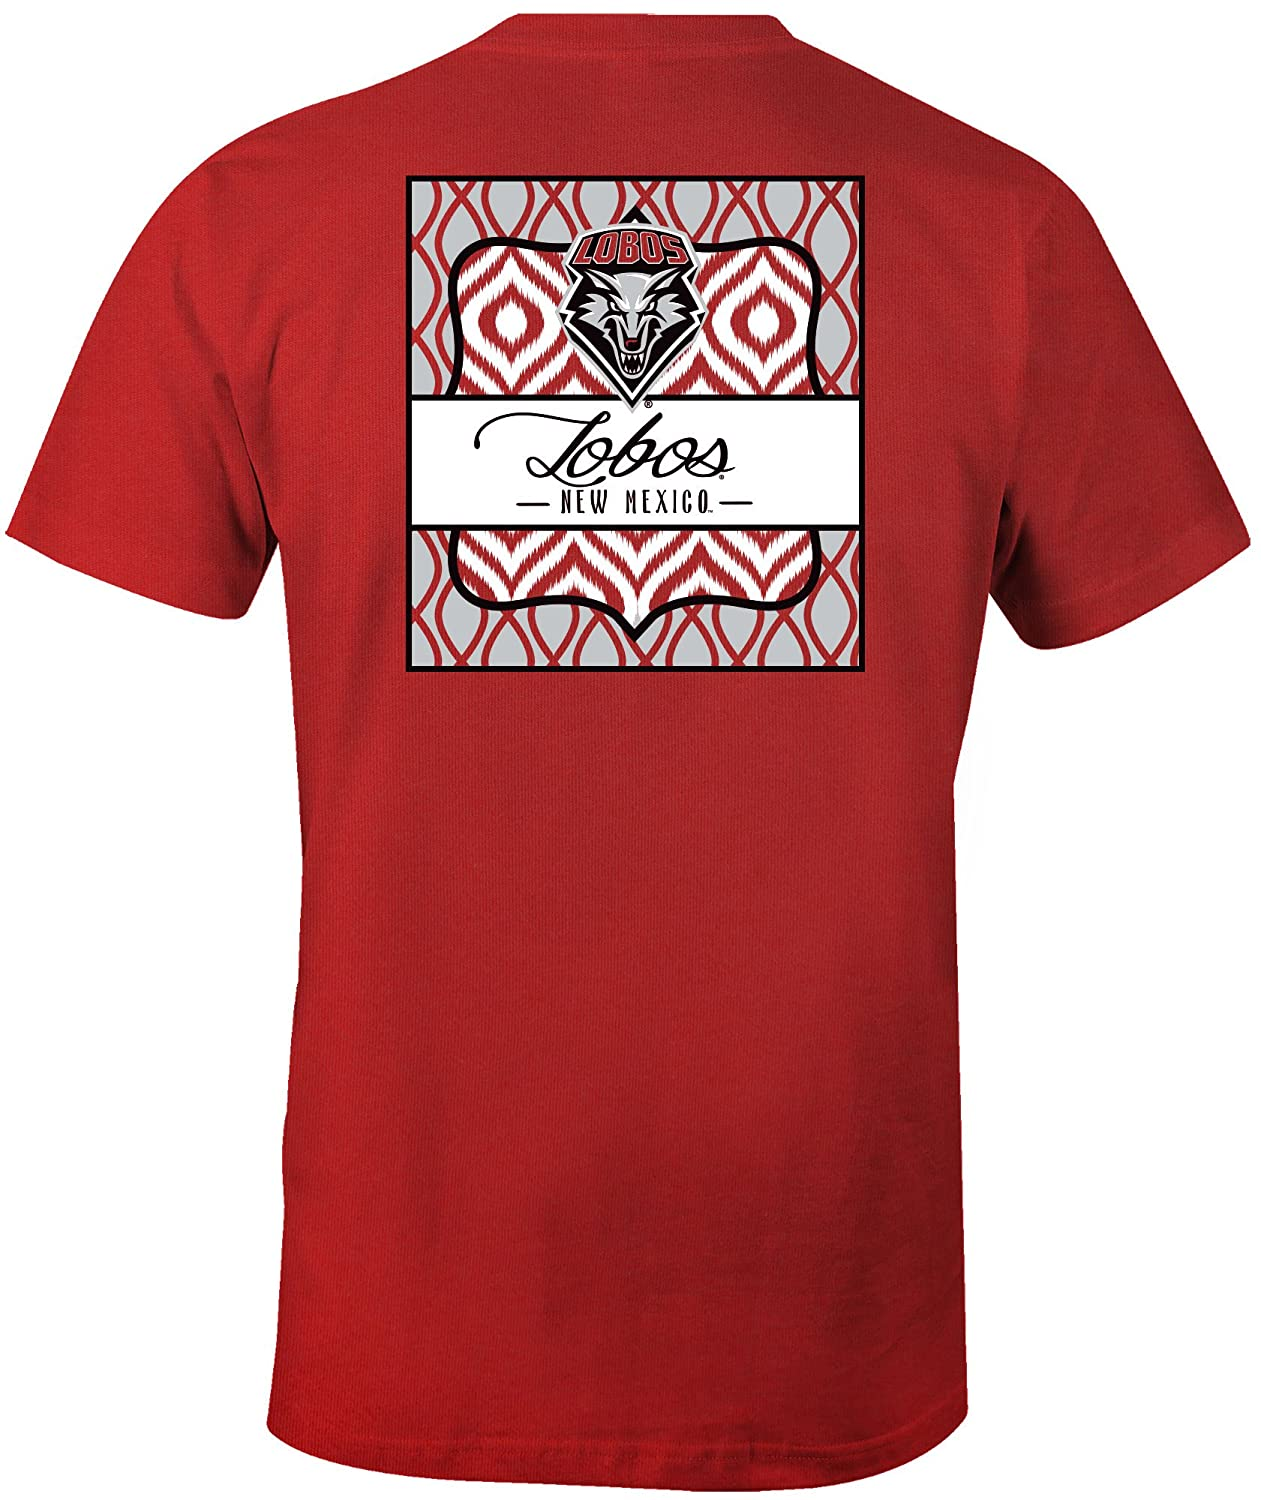 NCAA New Mexico Lobos Womens Double Pattern Scroll Favorite Short sleeve T-Shirt Medium,Red